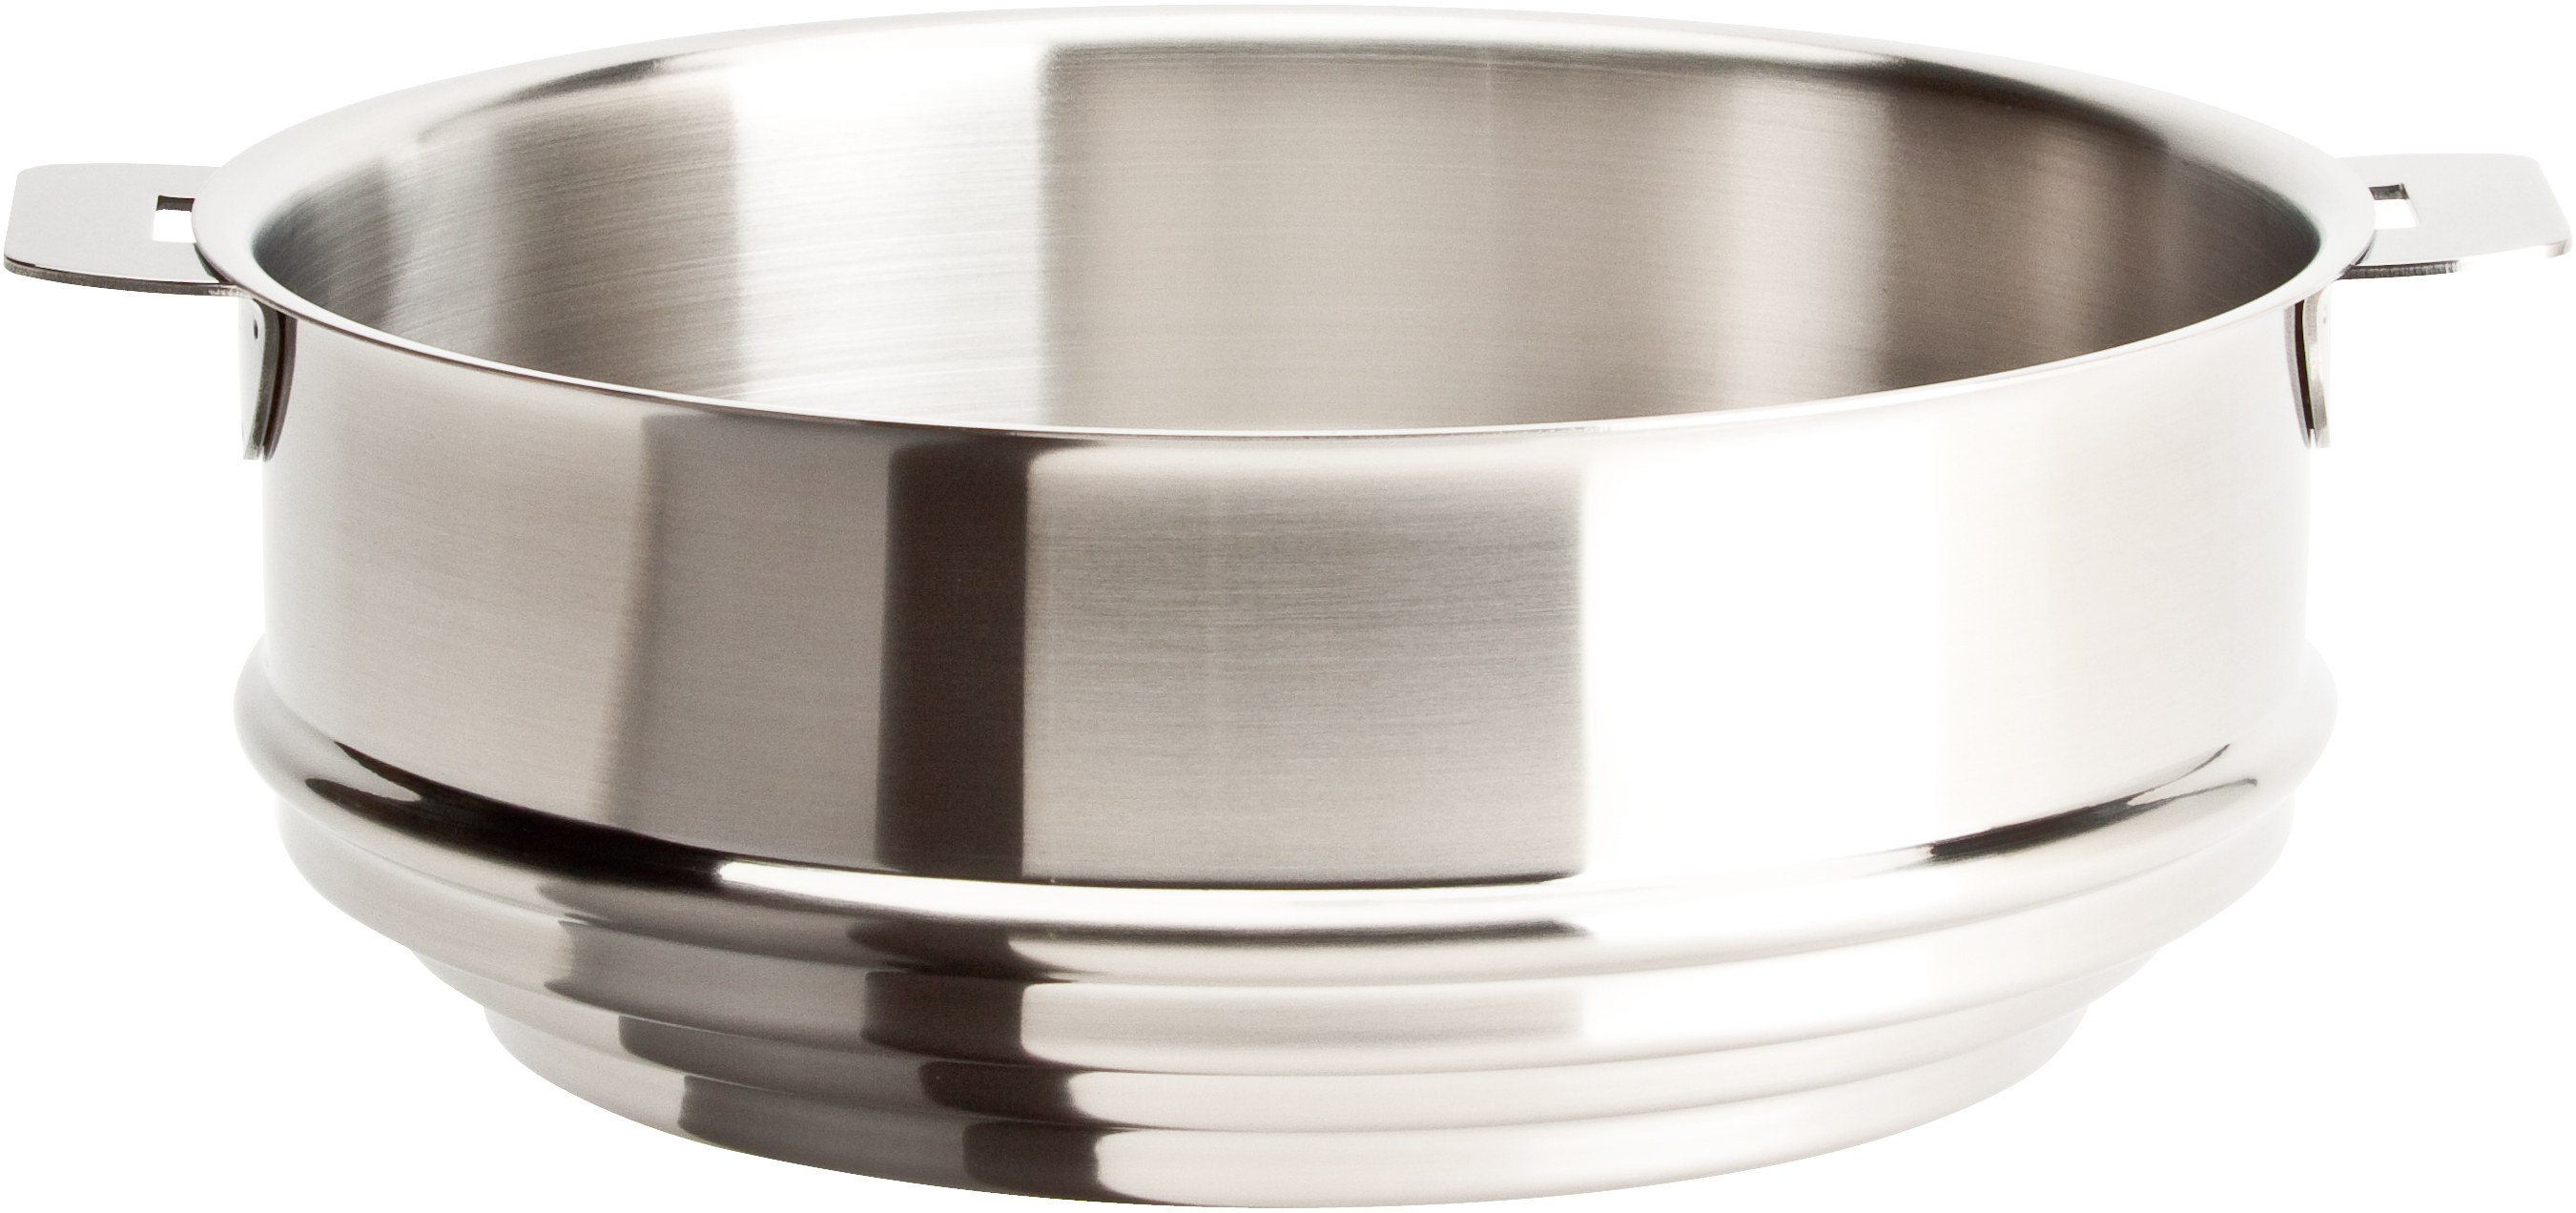 Cristel Strate L Stainless Steel 9.5 Inch Universal Steamer Insert